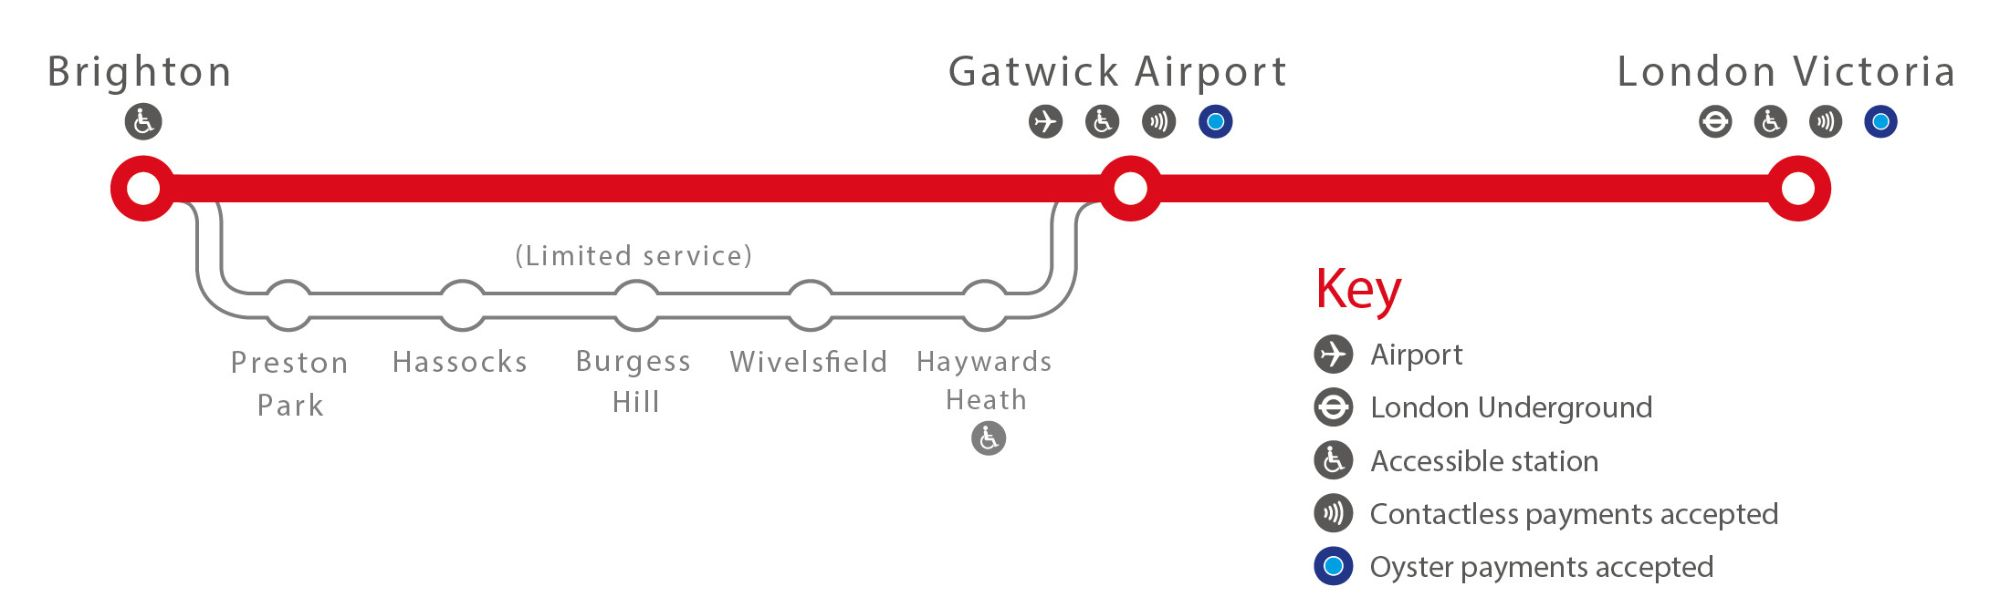 Image showing the Gatwick Express route map circa 2019.